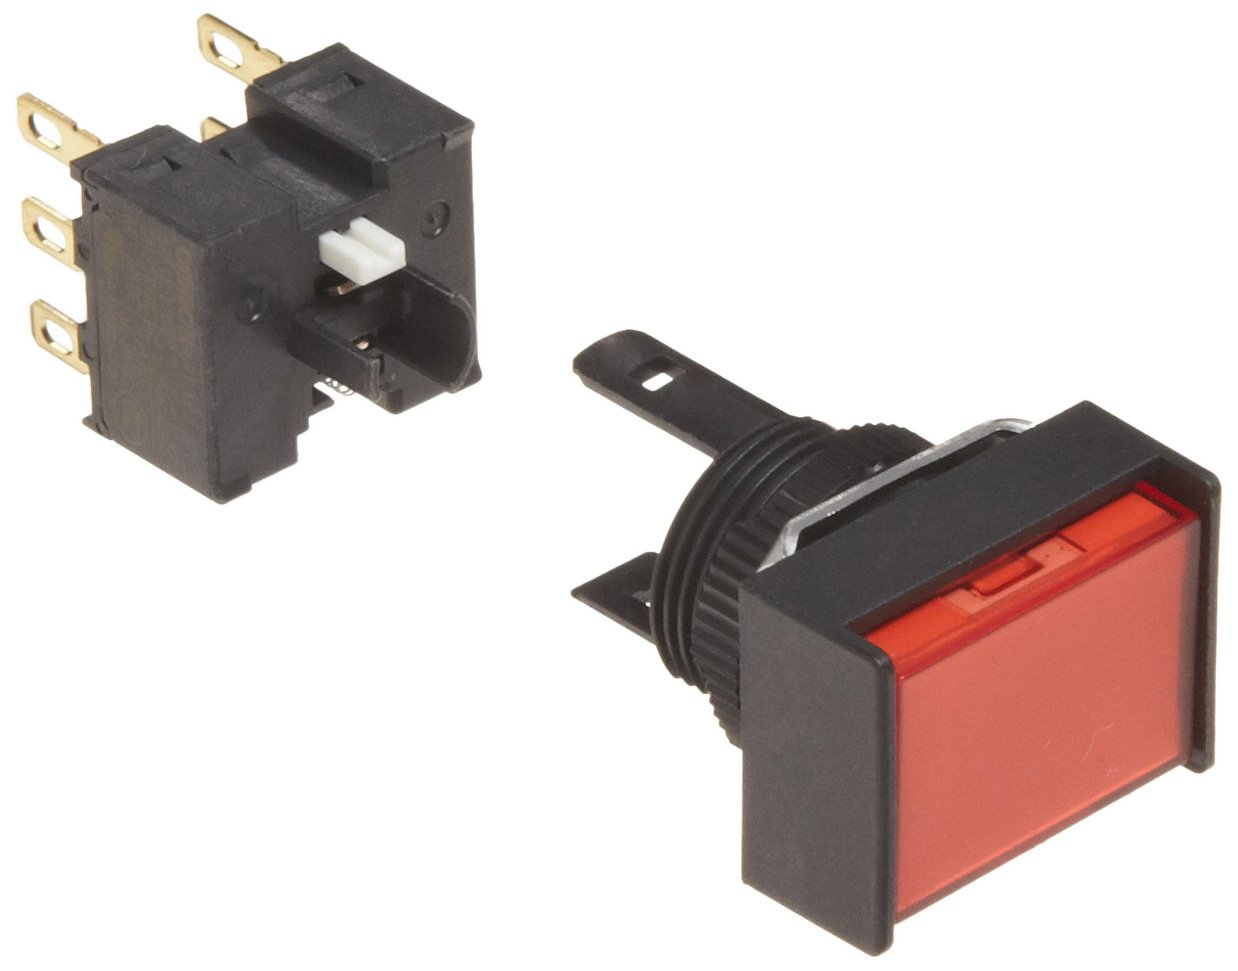 Omron A165-JRM-2 Two Way Guard Type Pushbutton and Switch, Solder Terminal, IP65 Oil Resistant, 16mm Mounting Aperture, Non-Lighted, Momentary Operation, Rectangular, Red, Double Pole Double Throw Contacts by Omron